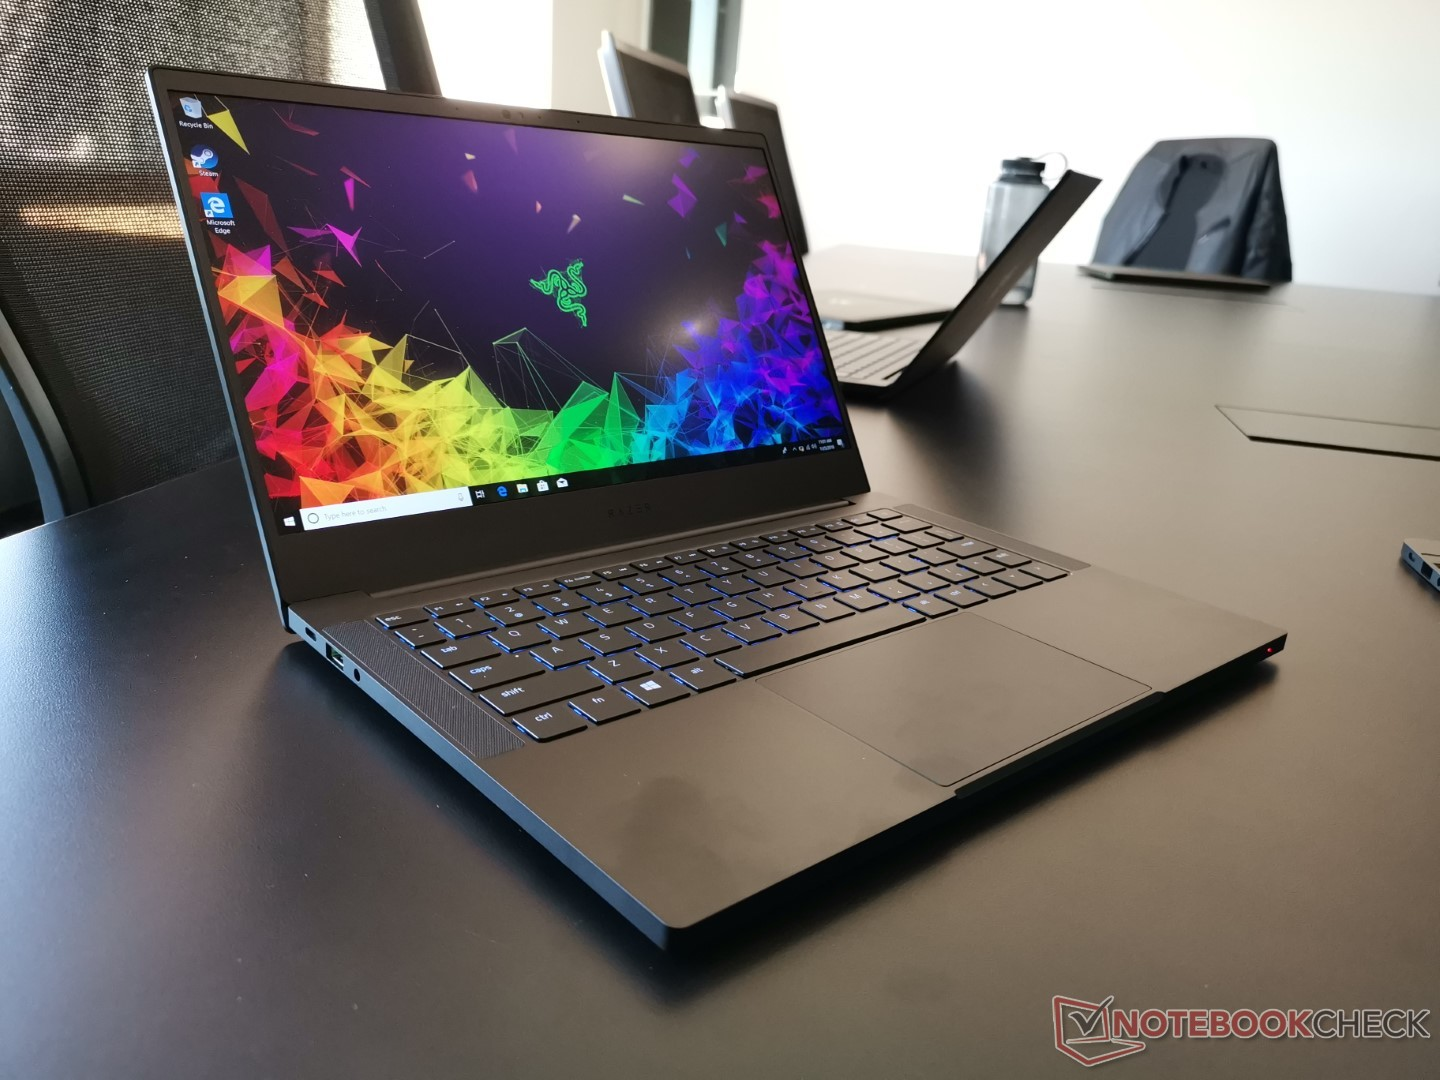 Kleines Laptop Razer Blade Stealth 2018 Hands On Neues Modell Mit Schlankem